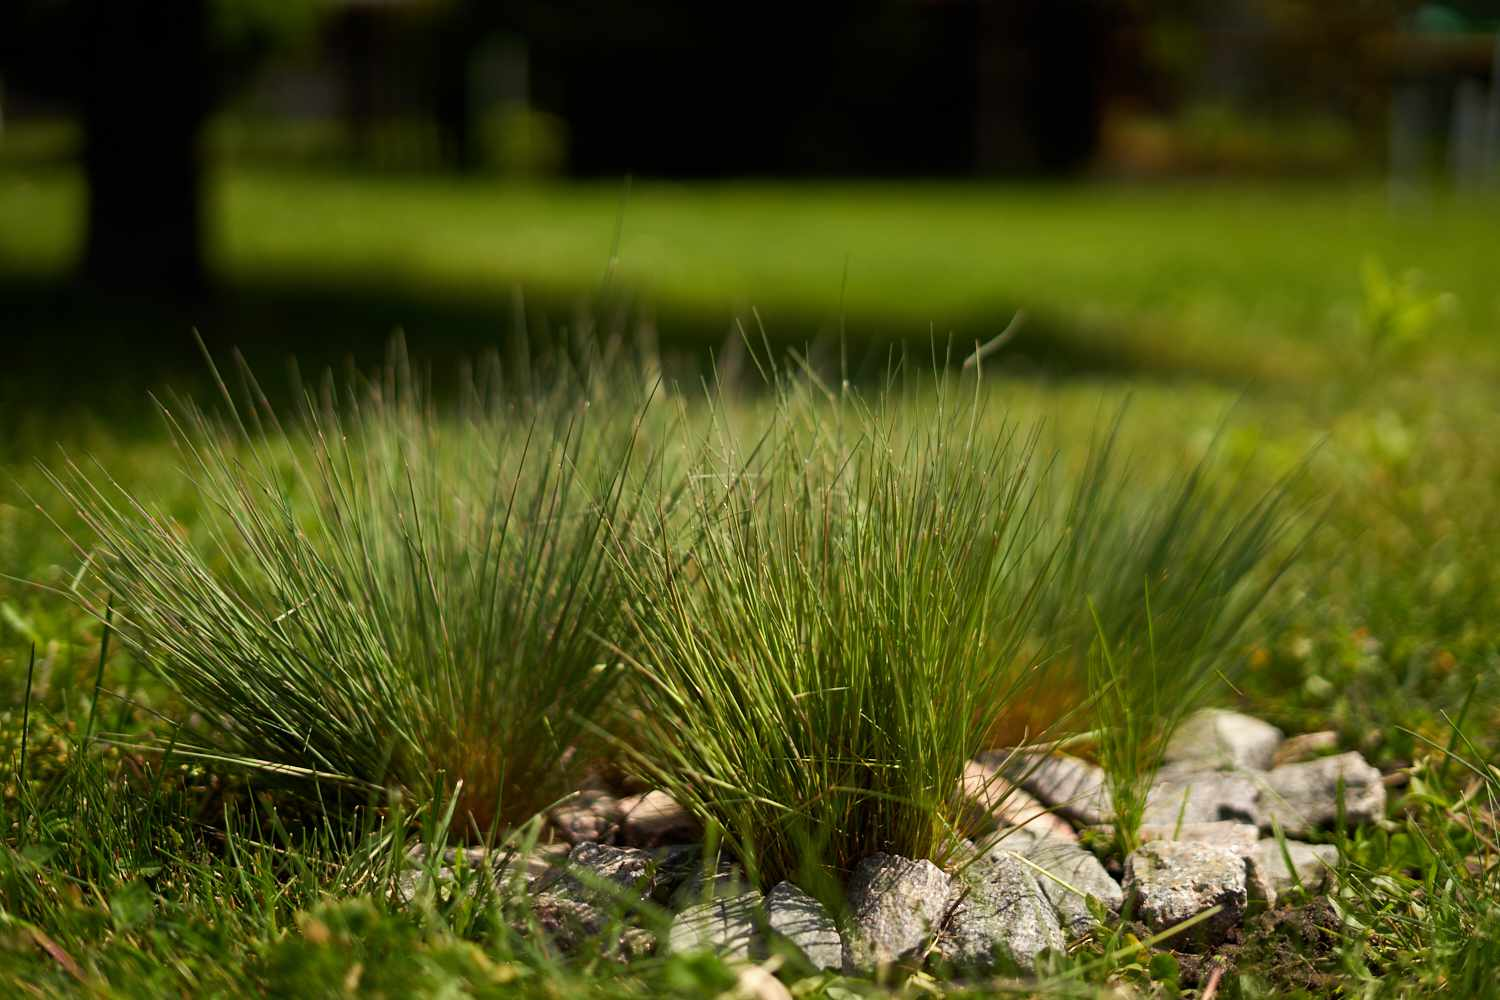 Cedar Sedge (Carex eburnea) grows in front yard surrounded by large rocks